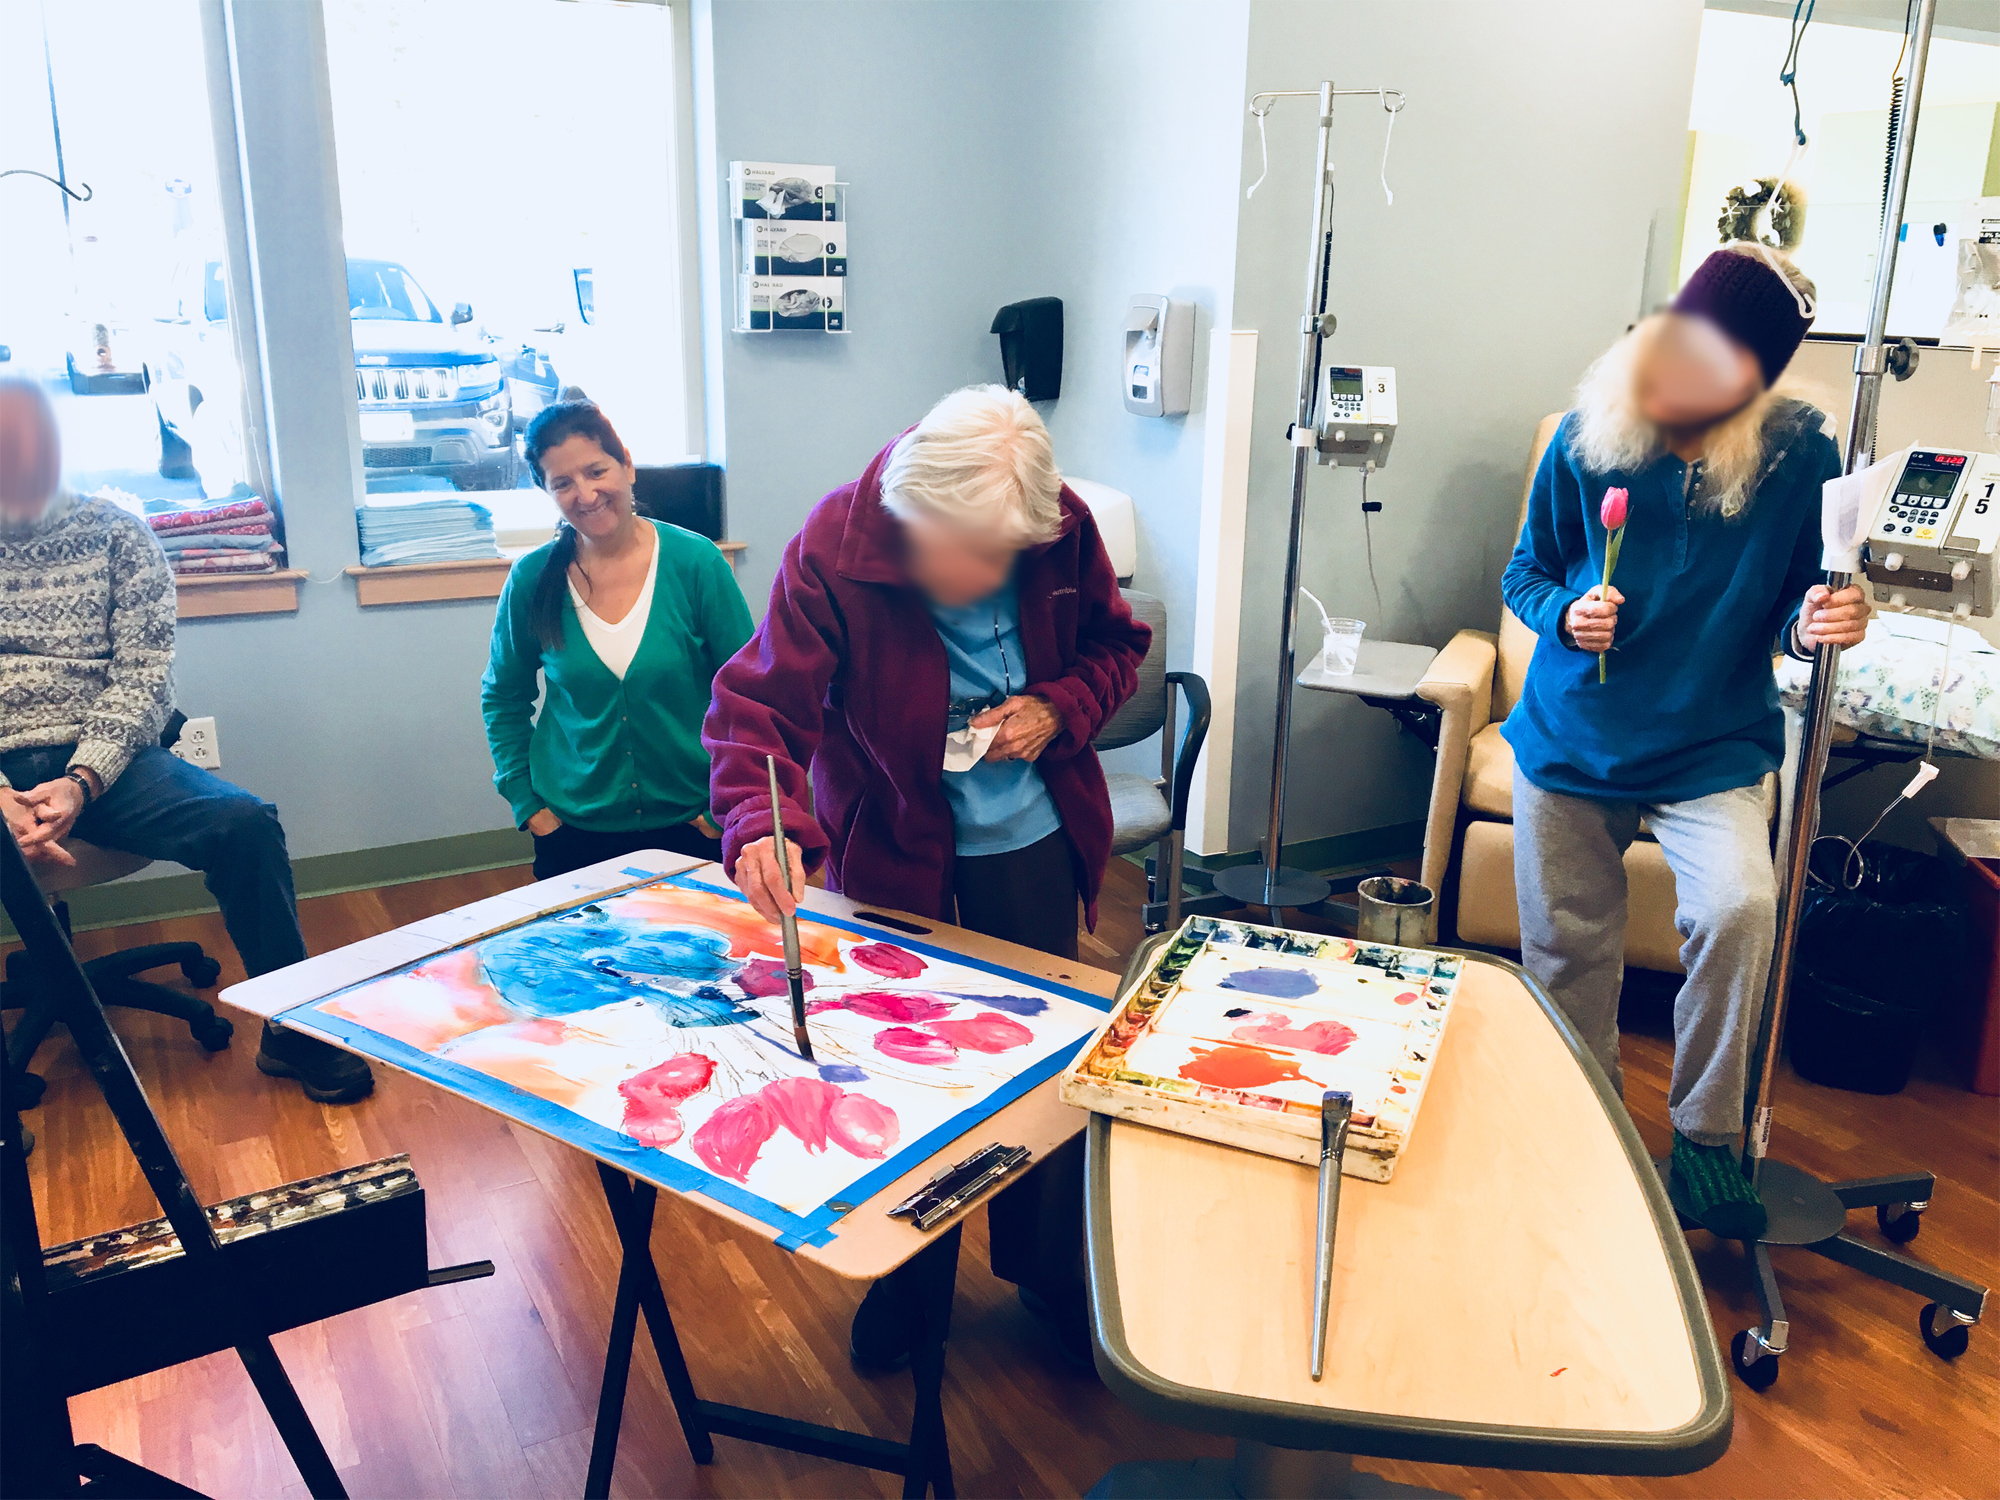 Artist in Chemotherapy Treatment Room